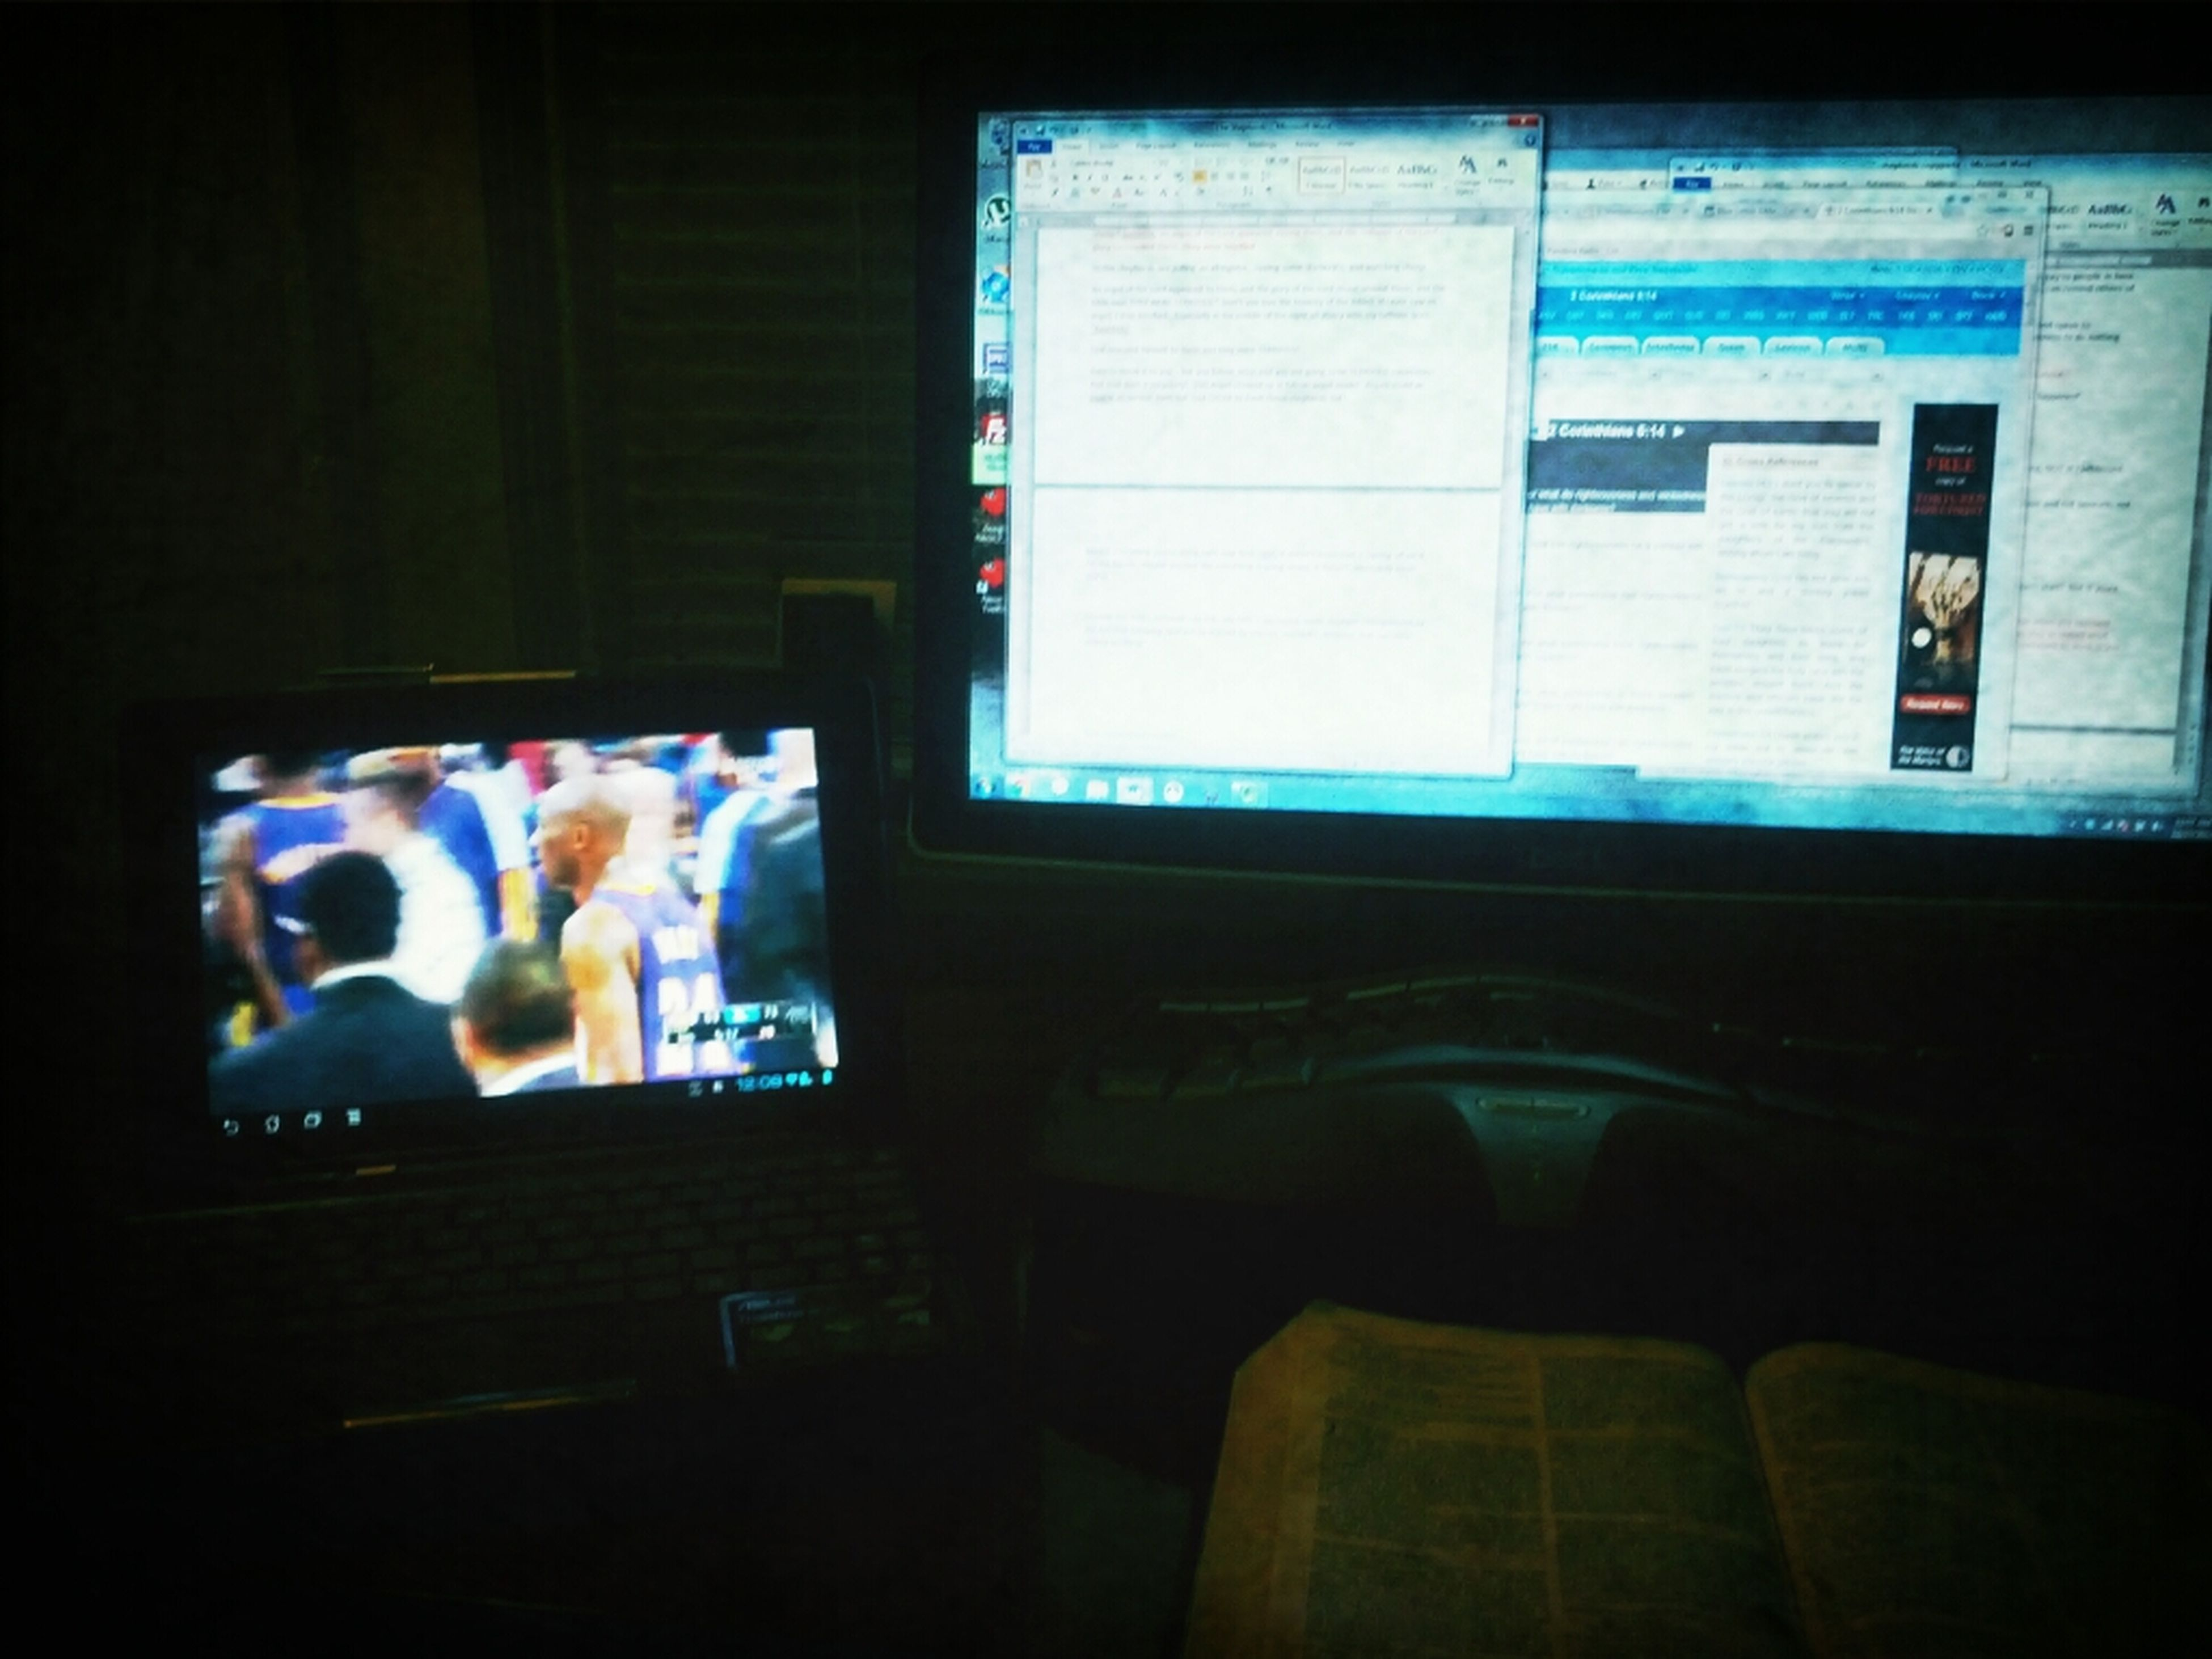 You need to be @wavechurchRVA - I'm feeling extra anointed in this message review sesh. #lakers #nashback #rva